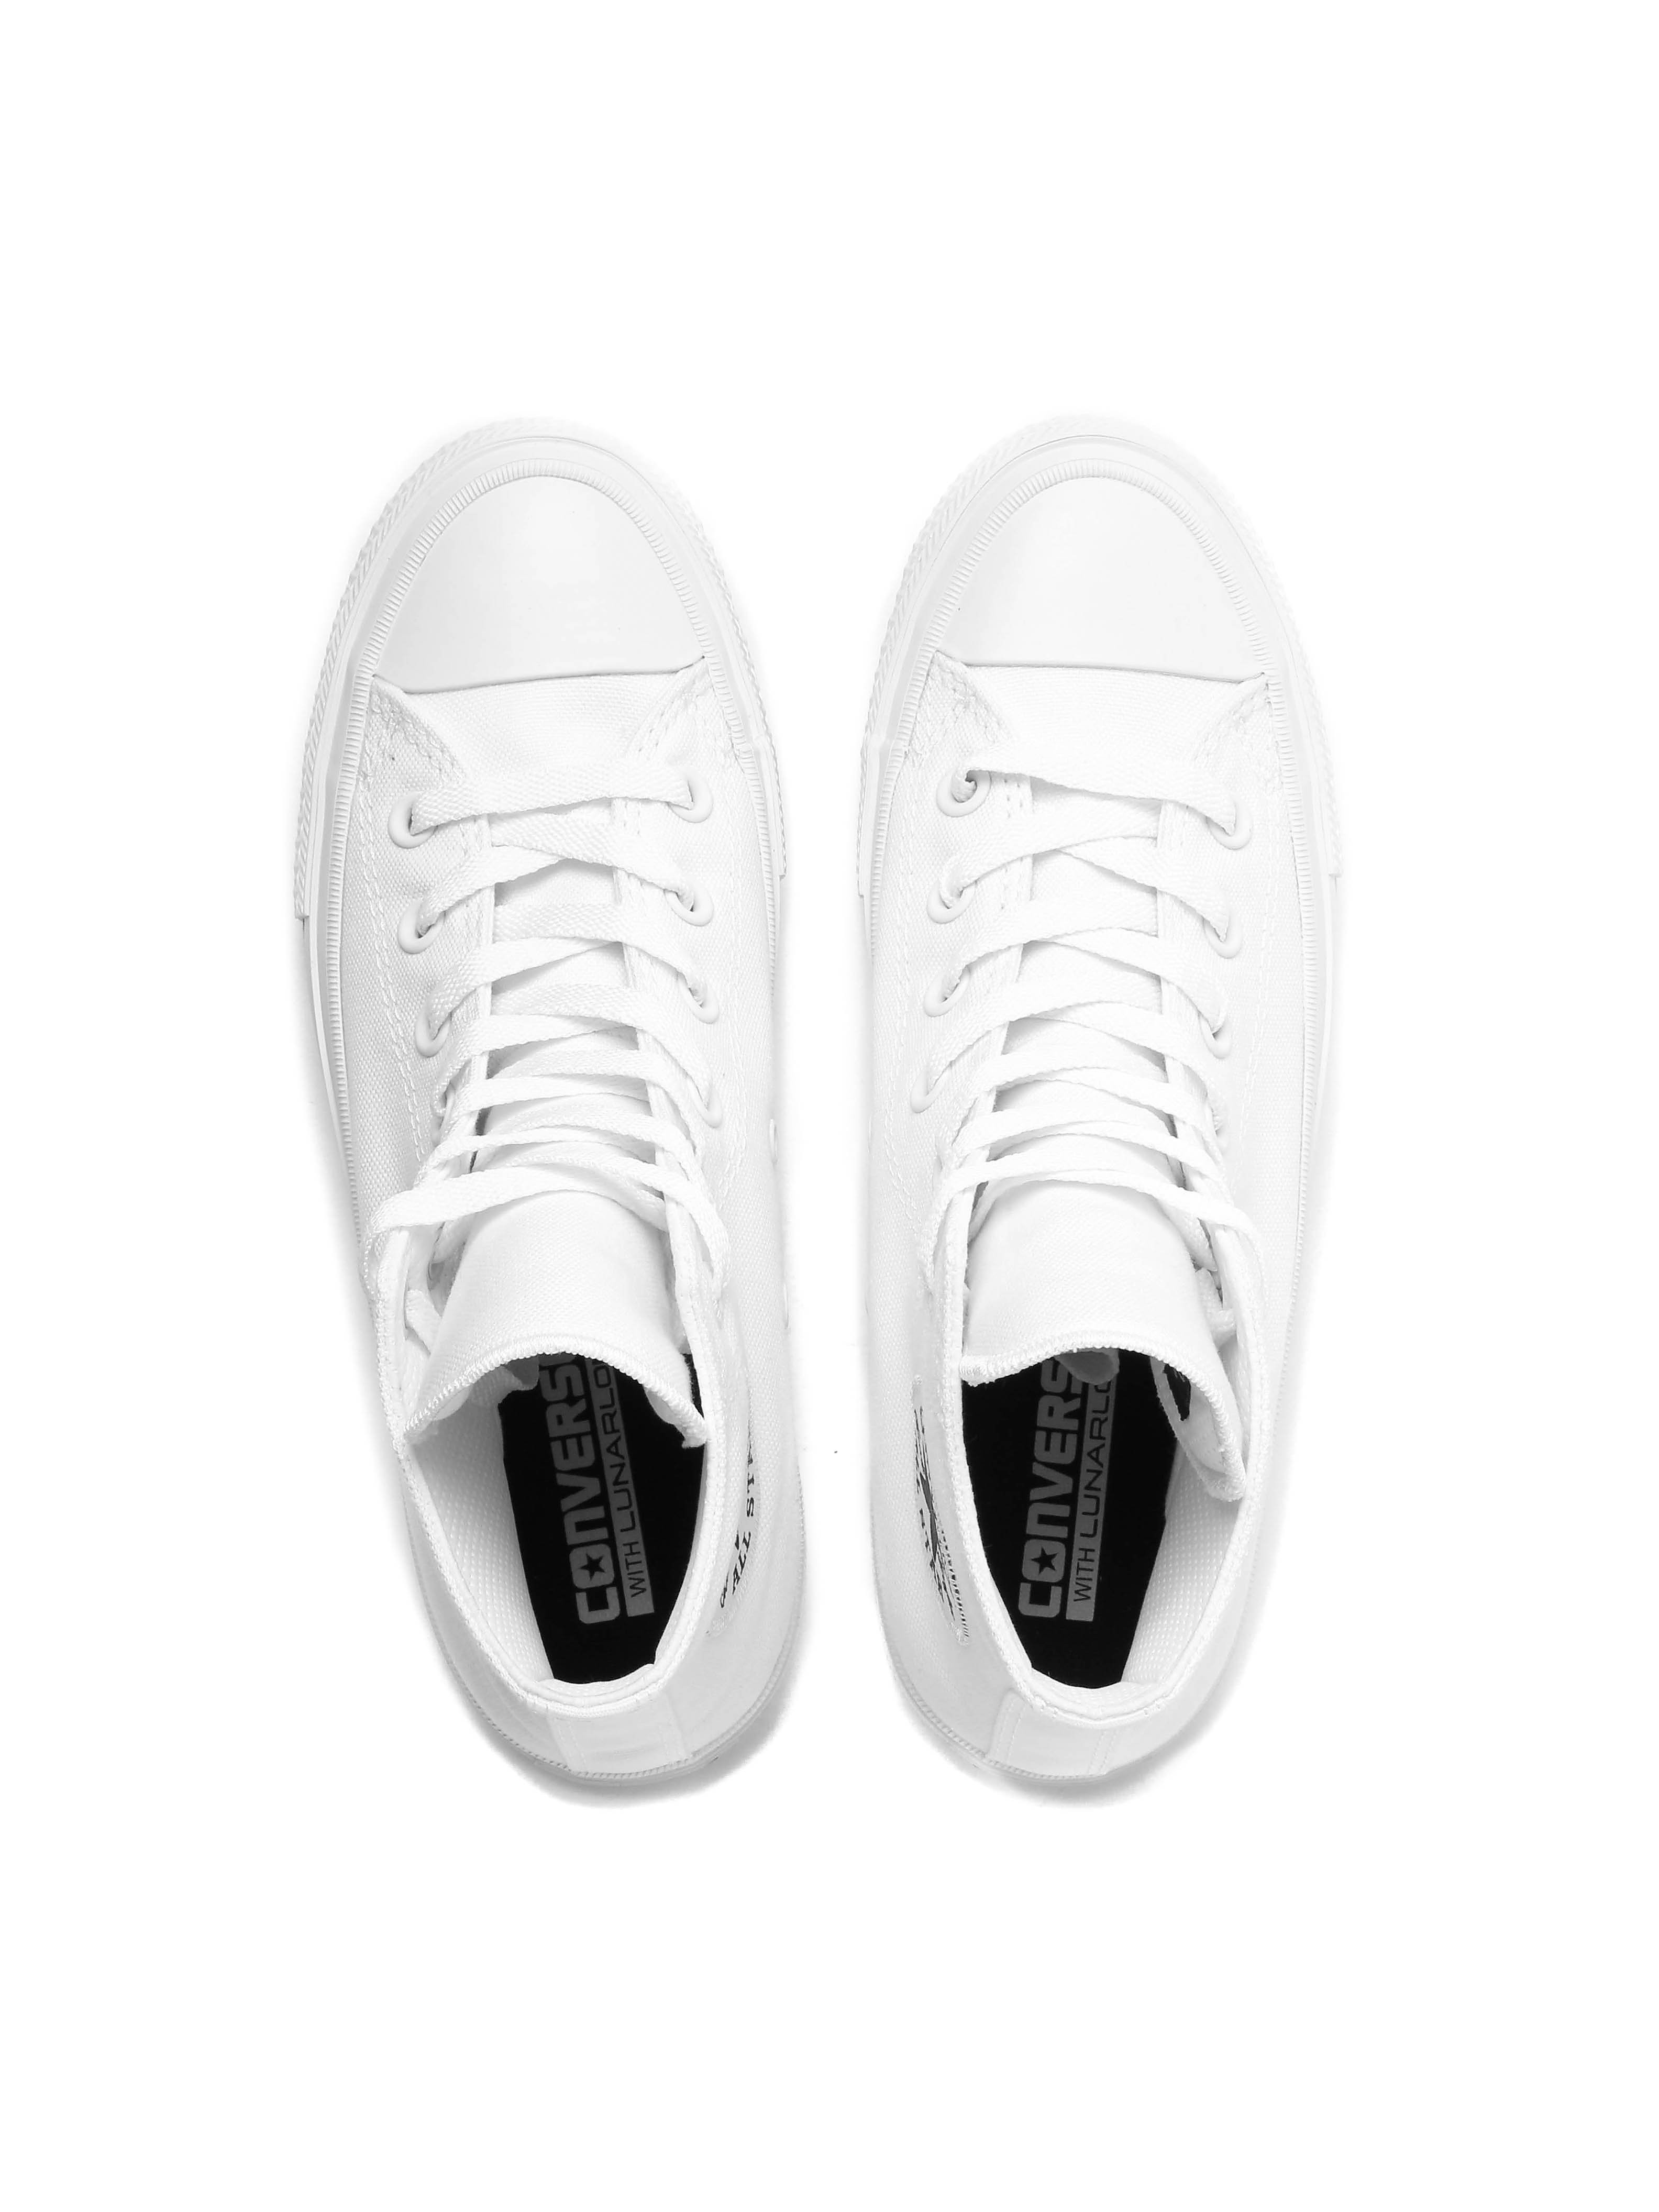 Converse Men's Chuck Taylor All Star II HI Trainers - White